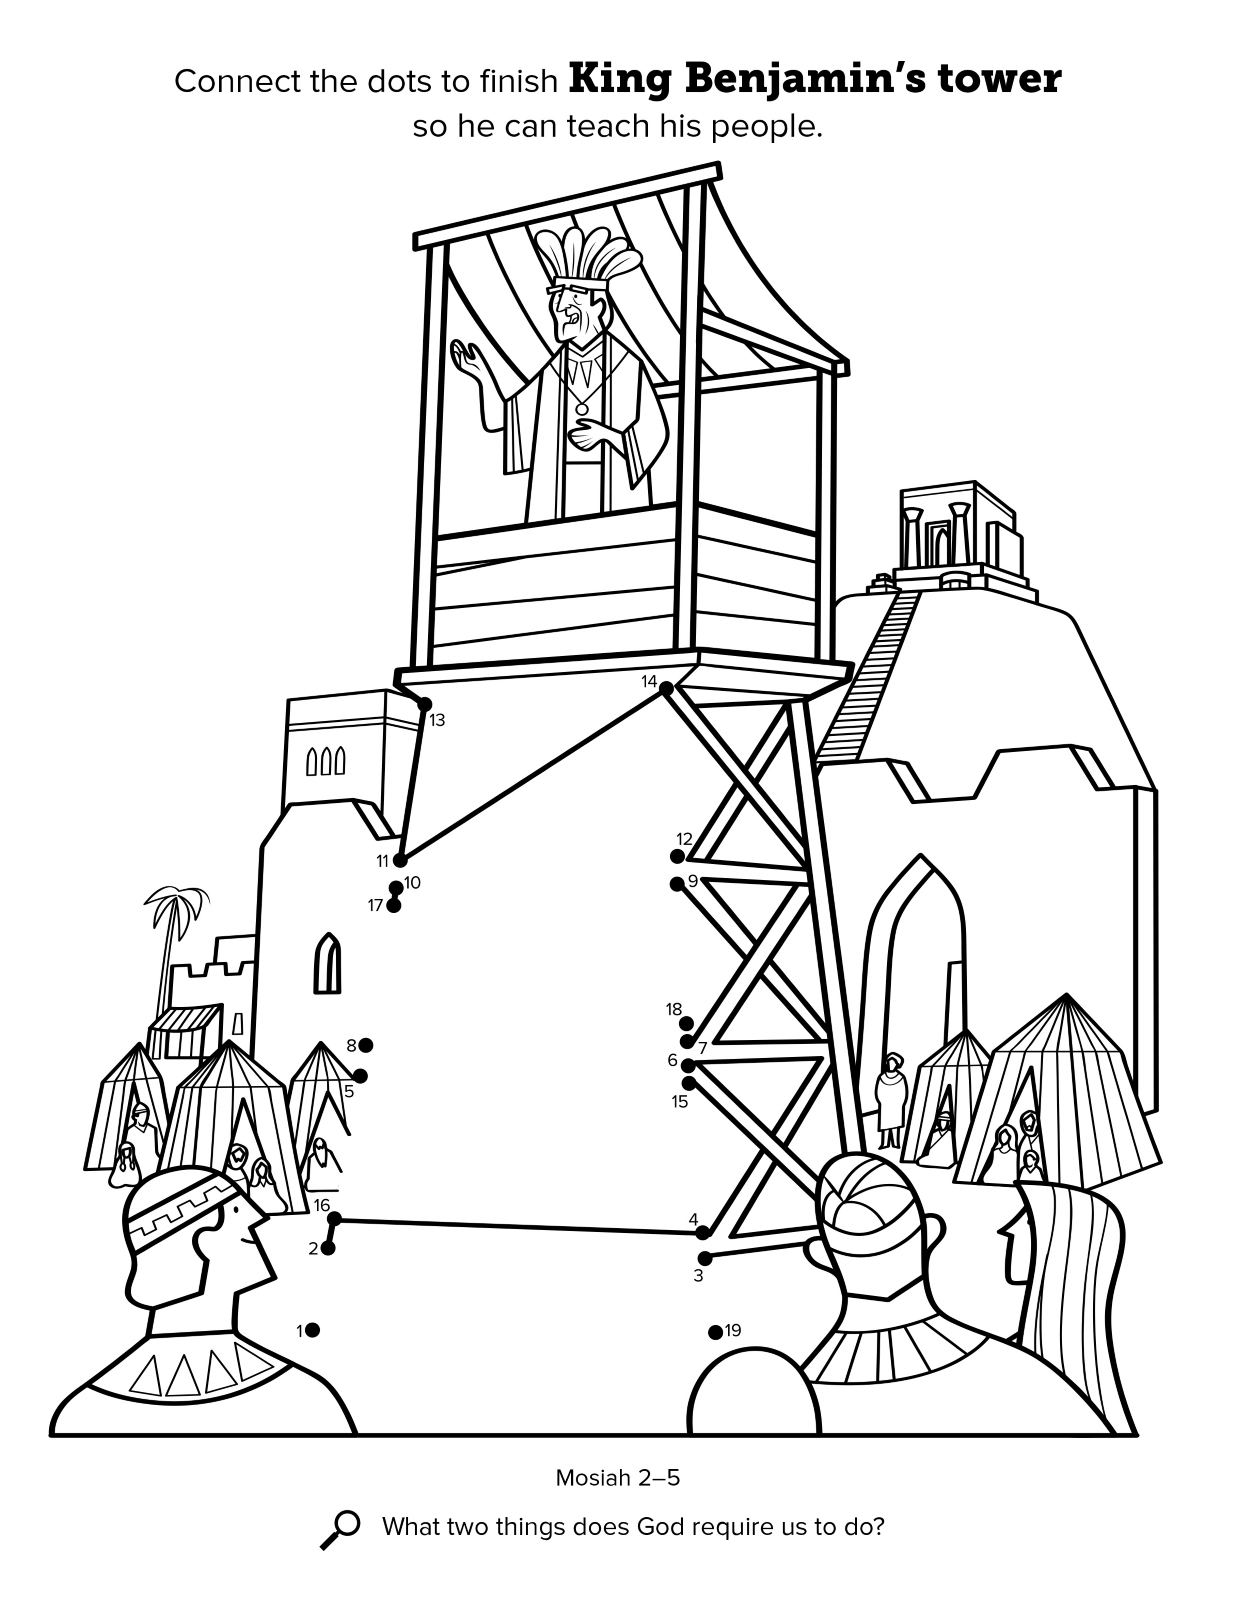 Book Of Mormon Missionary Coloring Pages